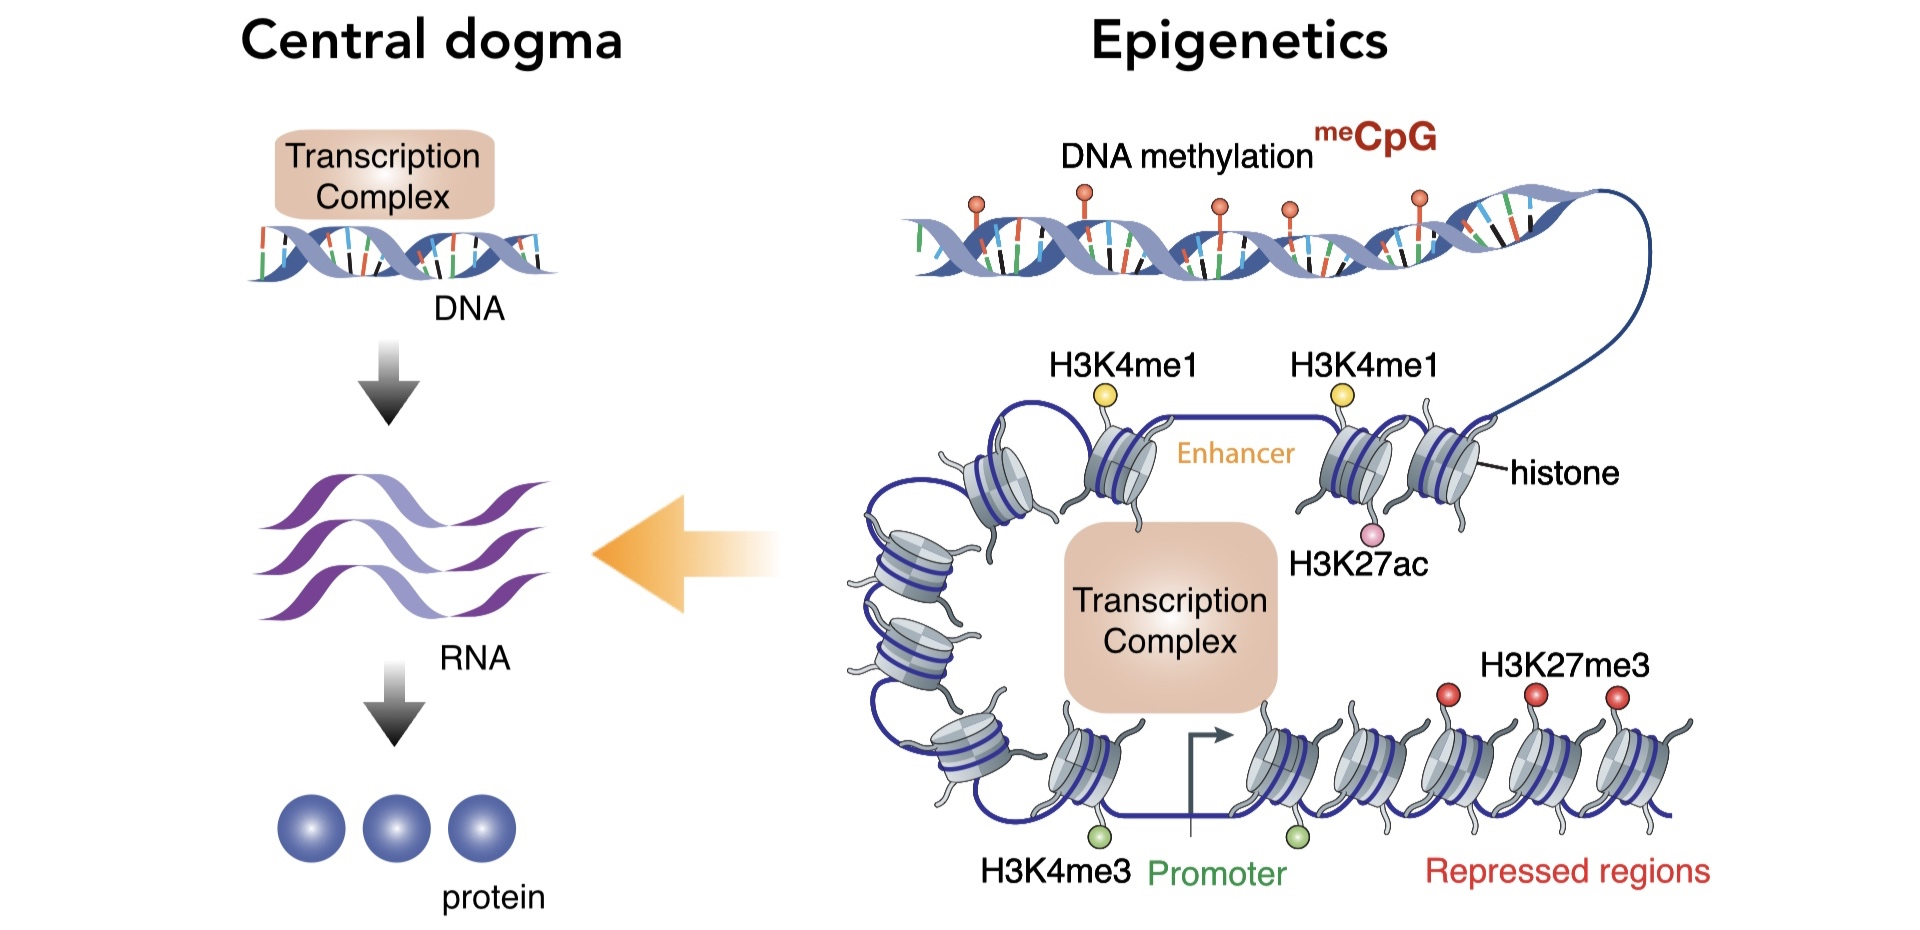 - Epigenetic information provides an additional layer of control for gene expression.